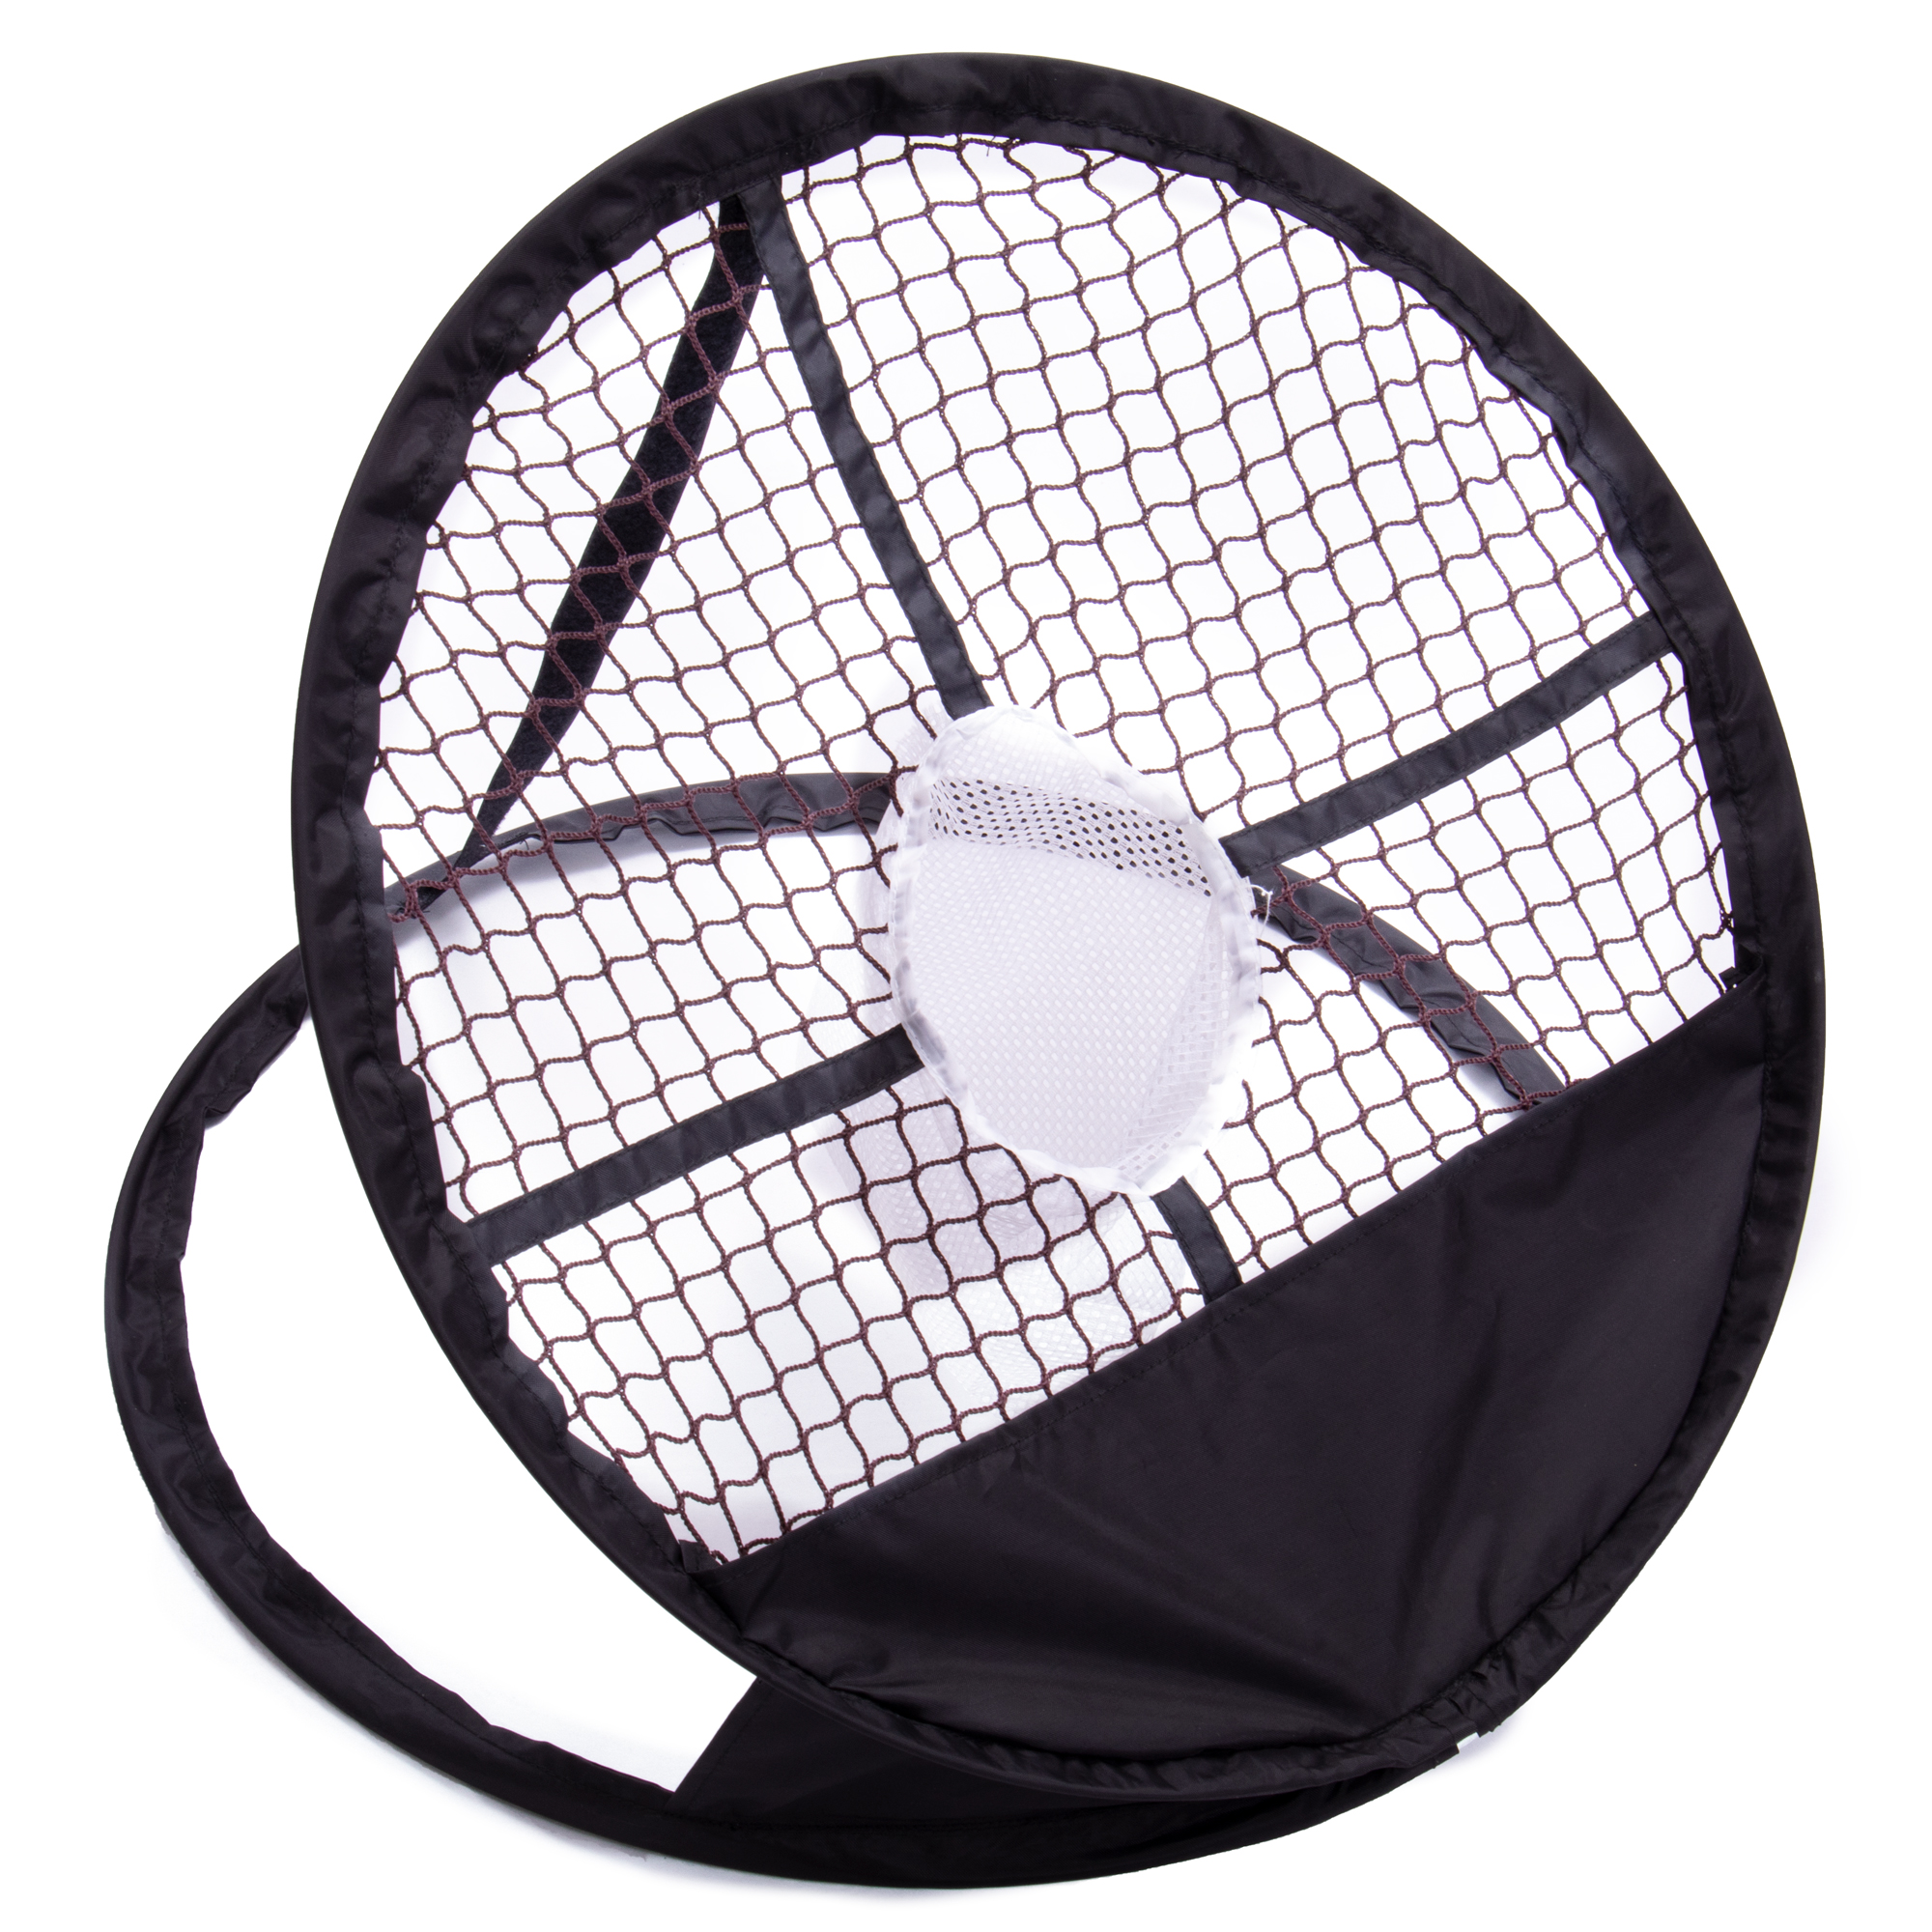 Pop-up Golf Rebounder with Target